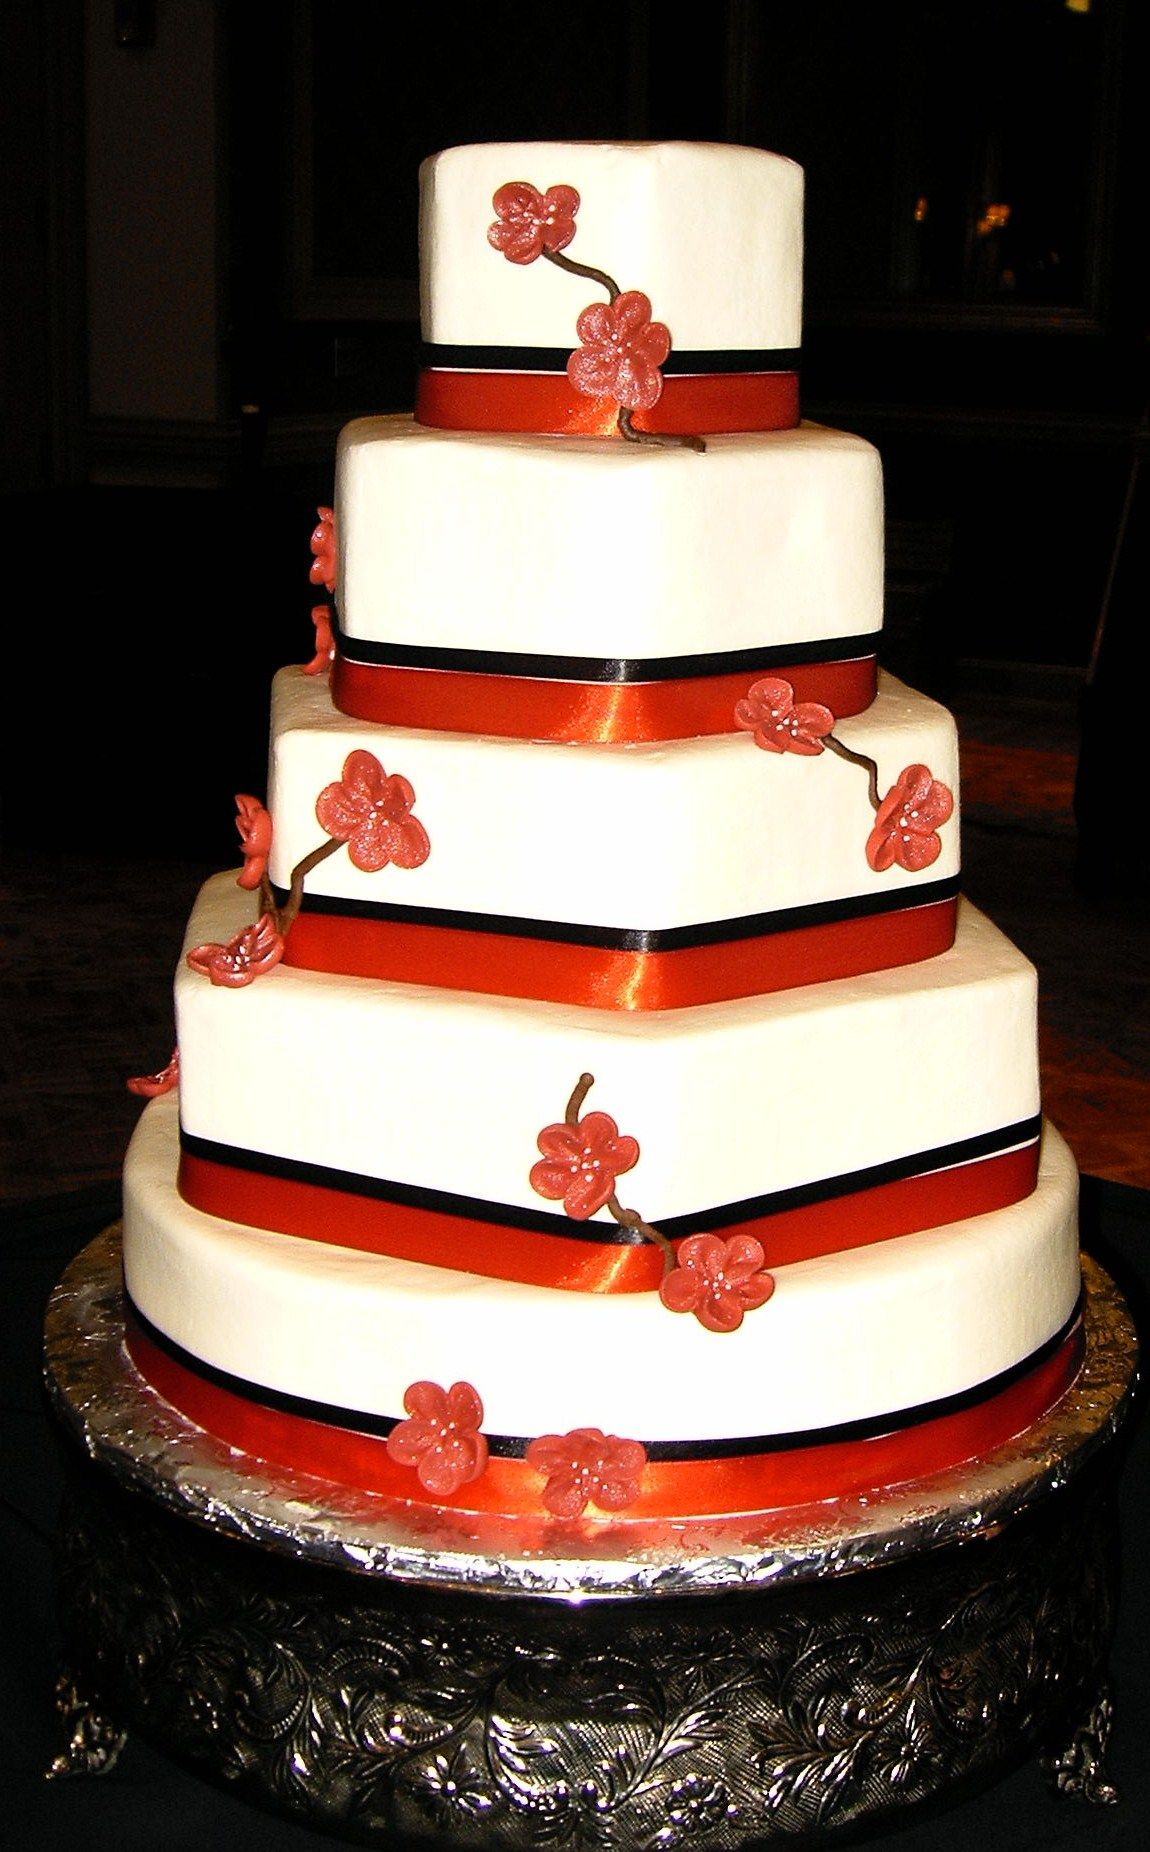 Buttercream iced wedding cake with royal icing flowers